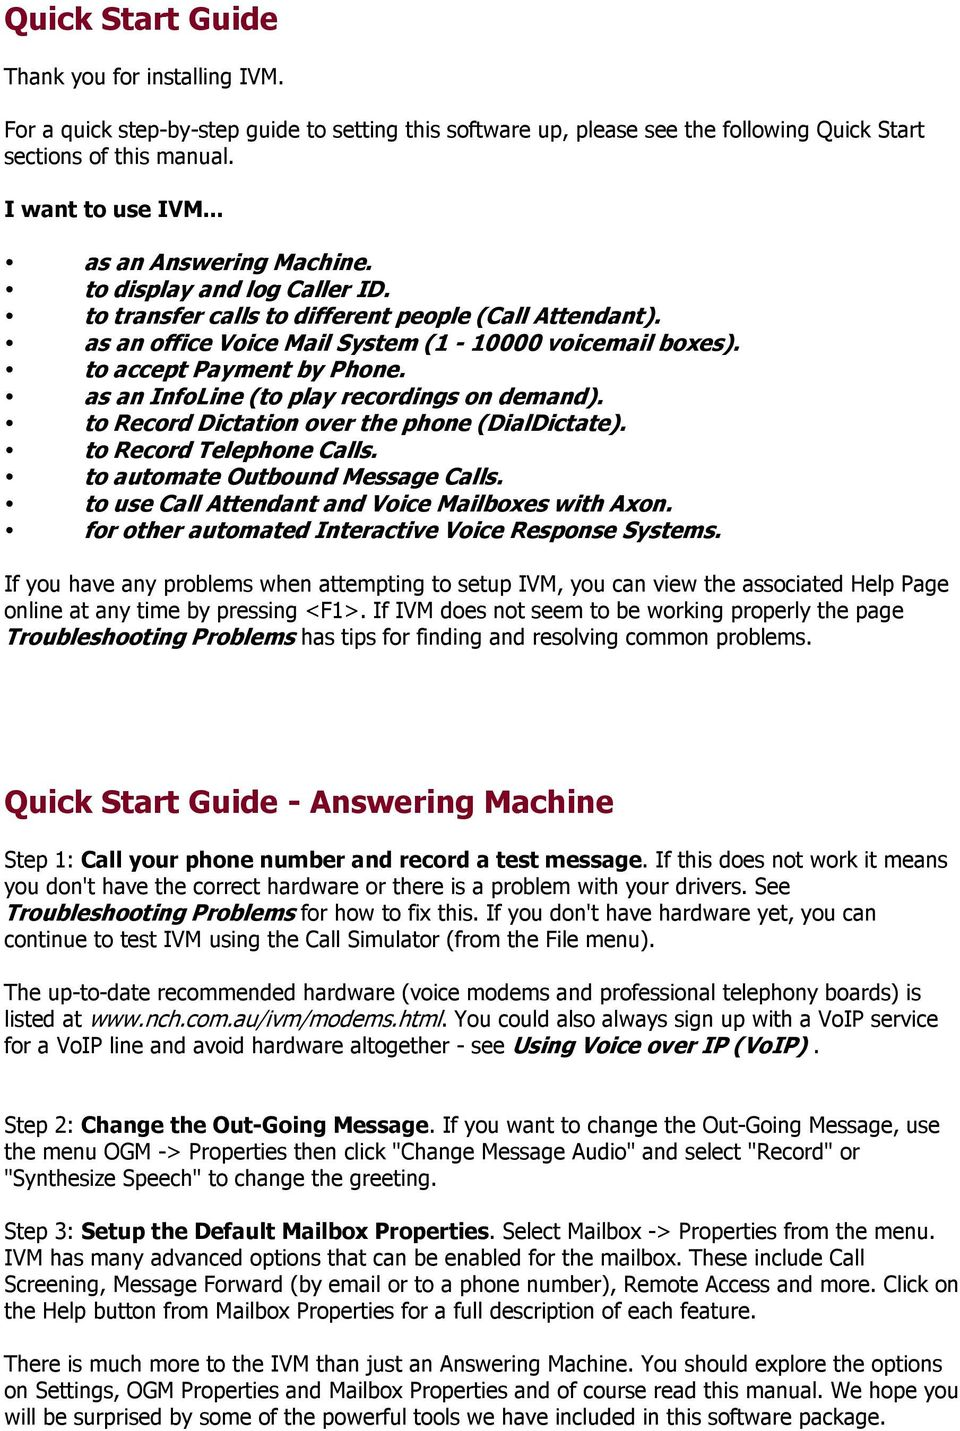 Nch Swift Sound Ivm Phone Answering Attendant Pdf